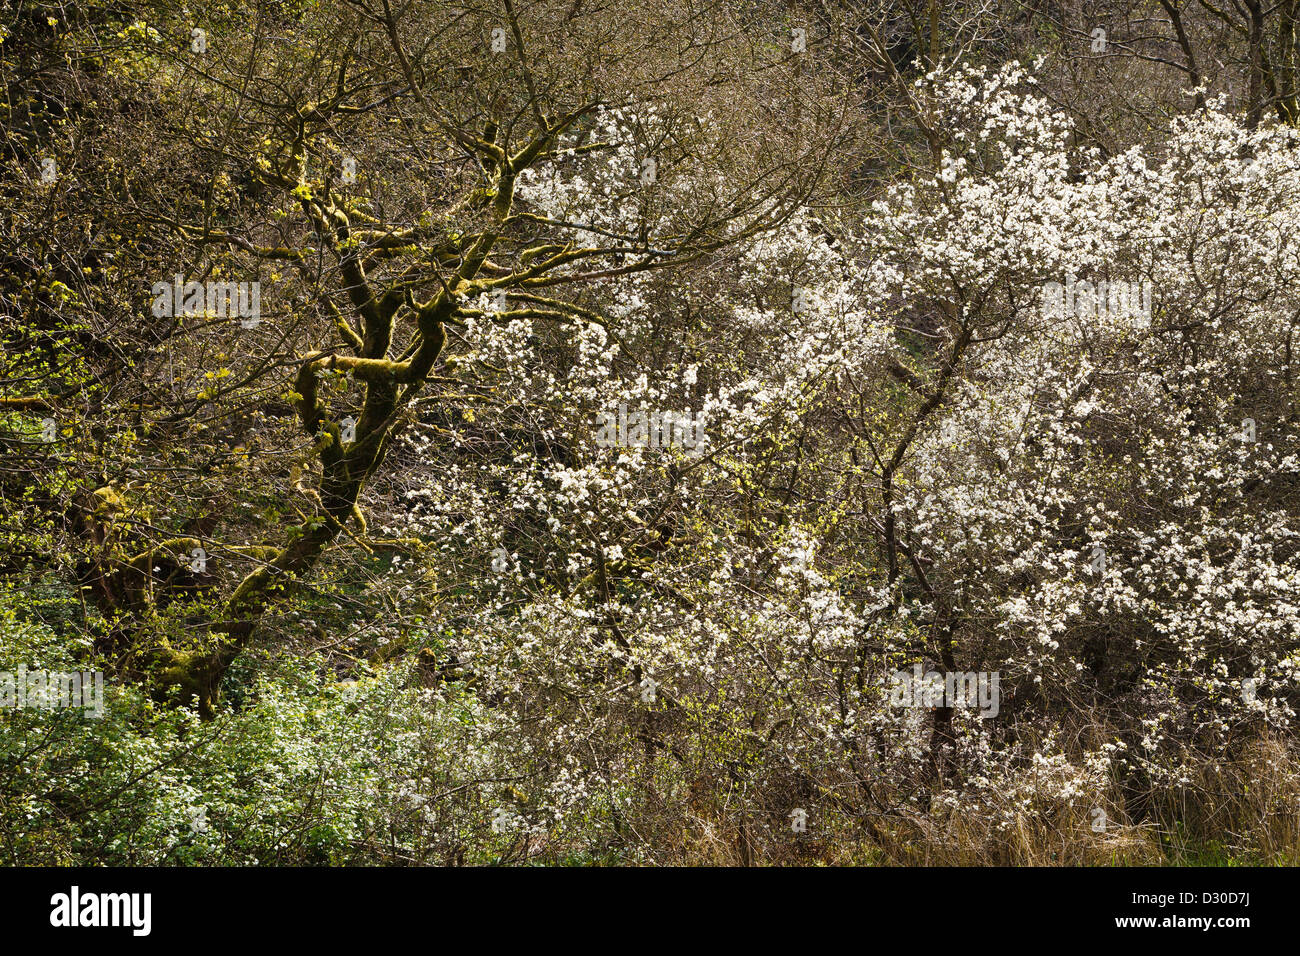 Blackthorn in flower, Manifold Valley, Peak District National Park, Staffordshire, England Stock Photo